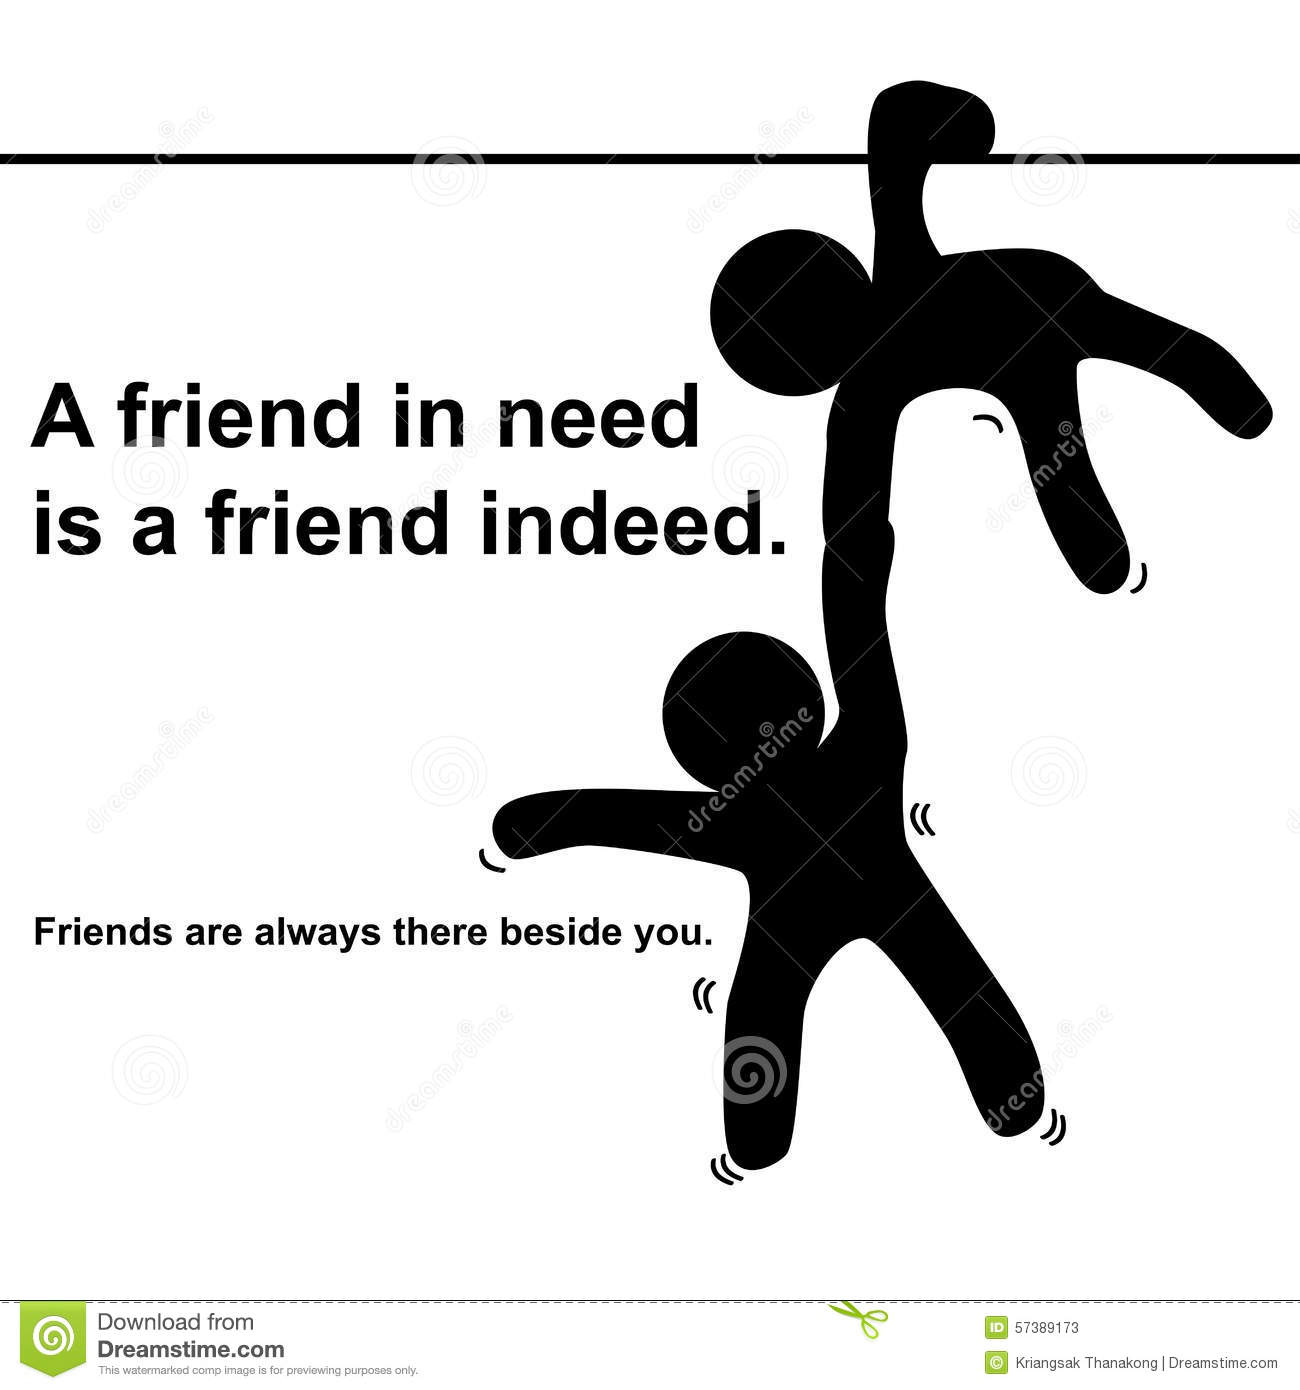 an essay about friend in need is a friend indeed Free essays on speech on a friend in need is friend indeed get help with your writing 1 through 30.